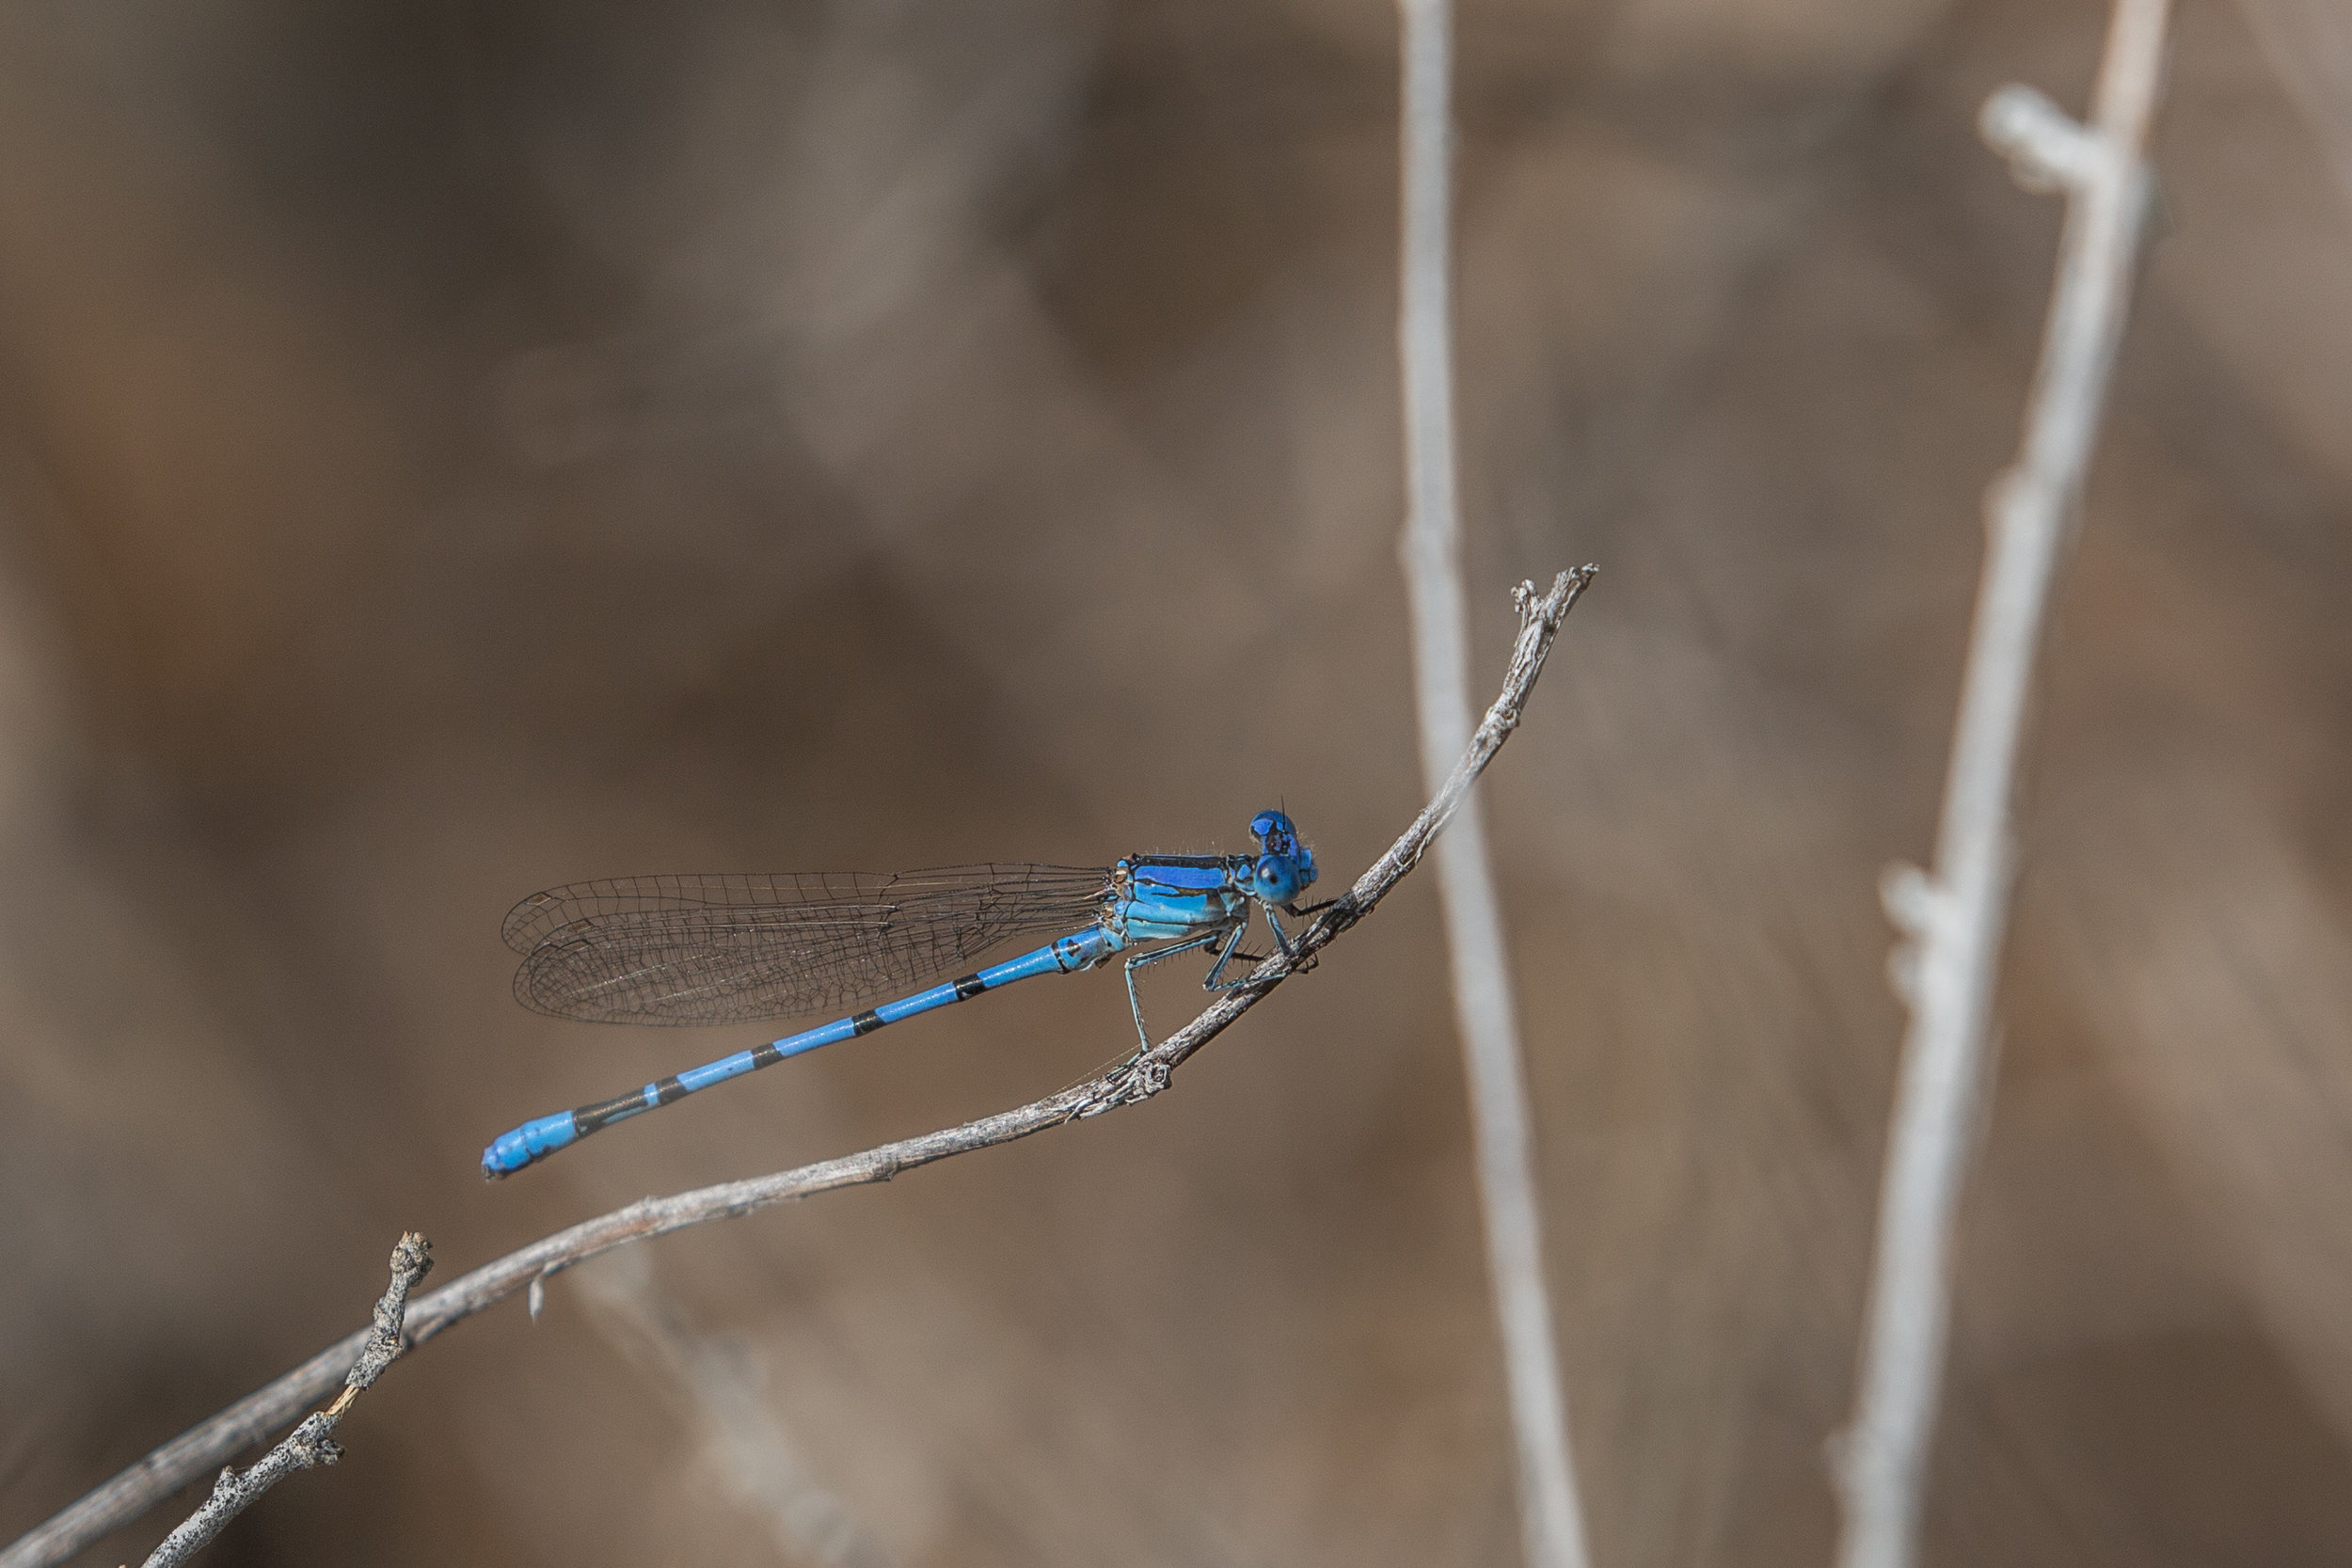 Tule bluet (Enallagma carunculatum) - Tule bluet, a species of damselfly, in Rio Grande del Norte National Monument.